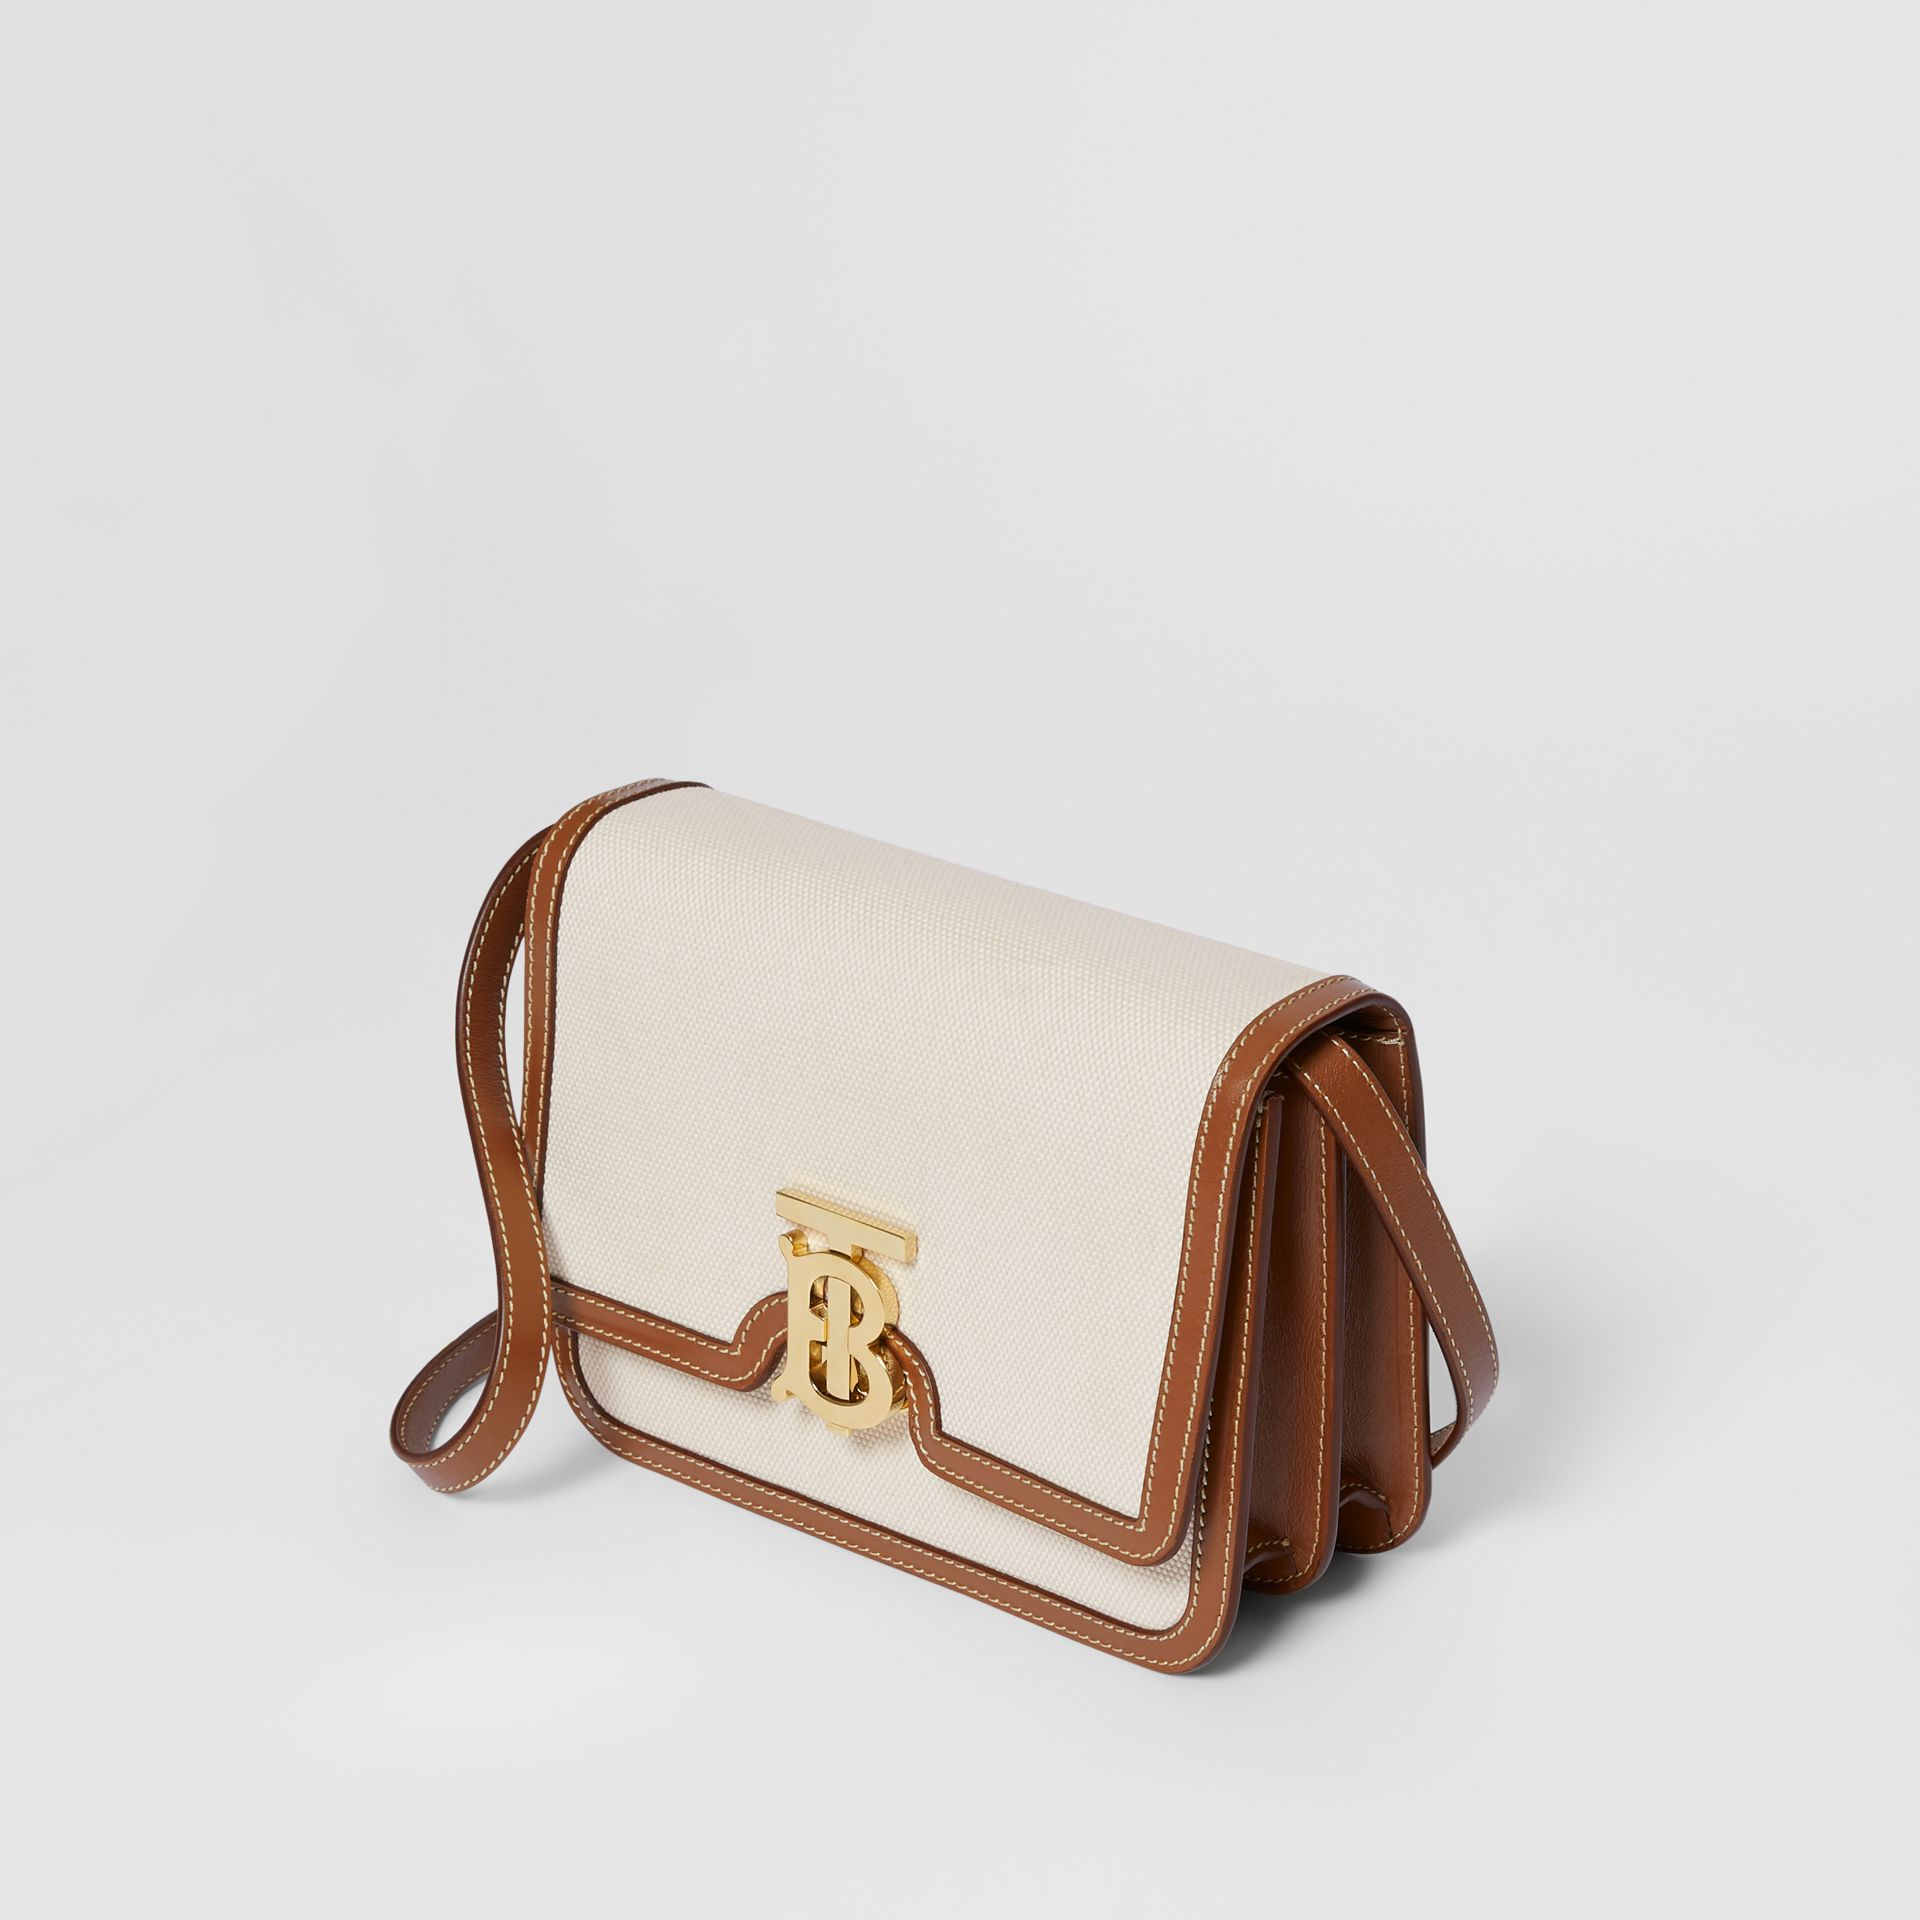 Small Two-tone Canvas and Leather TB Bag in Malt Brown - Women | Burberry Australia - gallery image 3